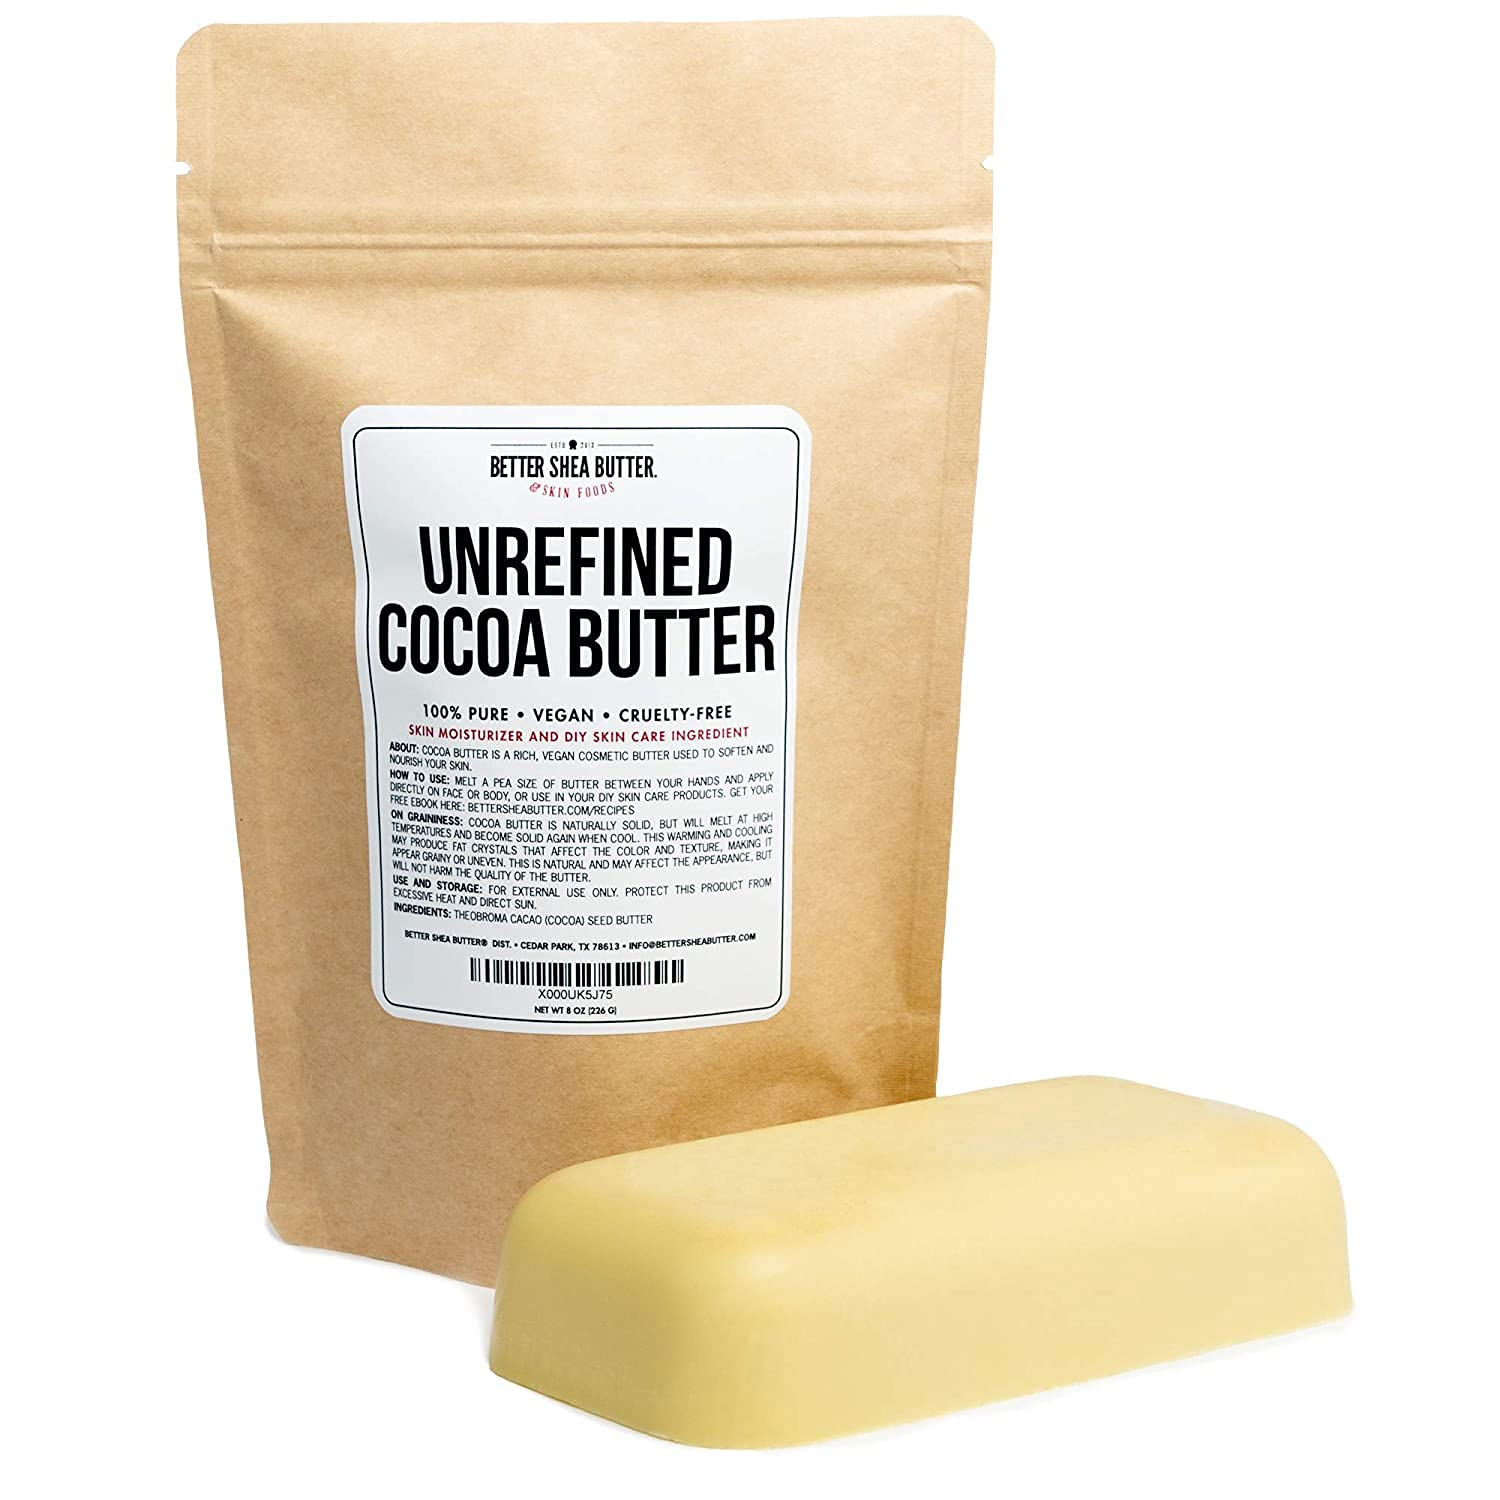 Unrefined Cocoa Butter - Use on Pregnancy Stretch Marks, Make Moisturizing Lotion, Chap Stick, Lip Balm and Body Butter